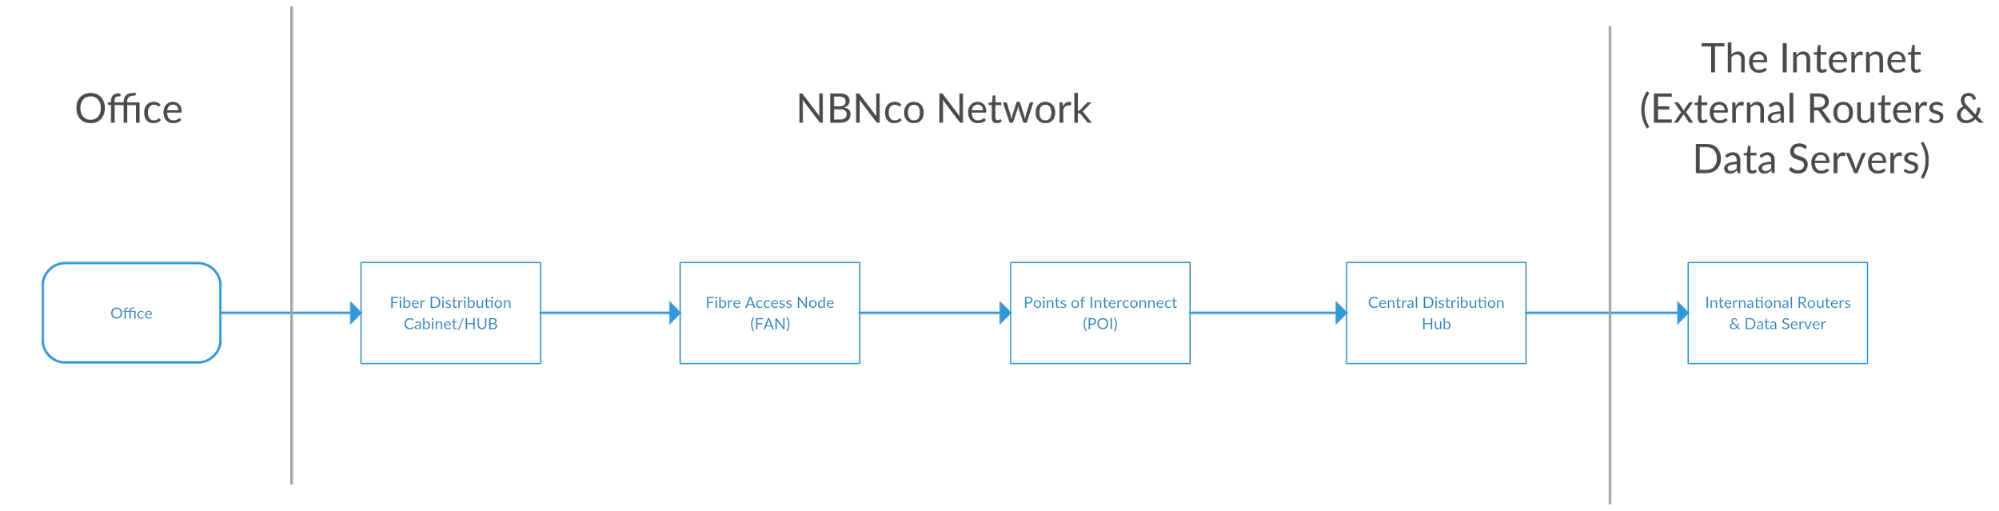 how your business connects to the internet via nbn